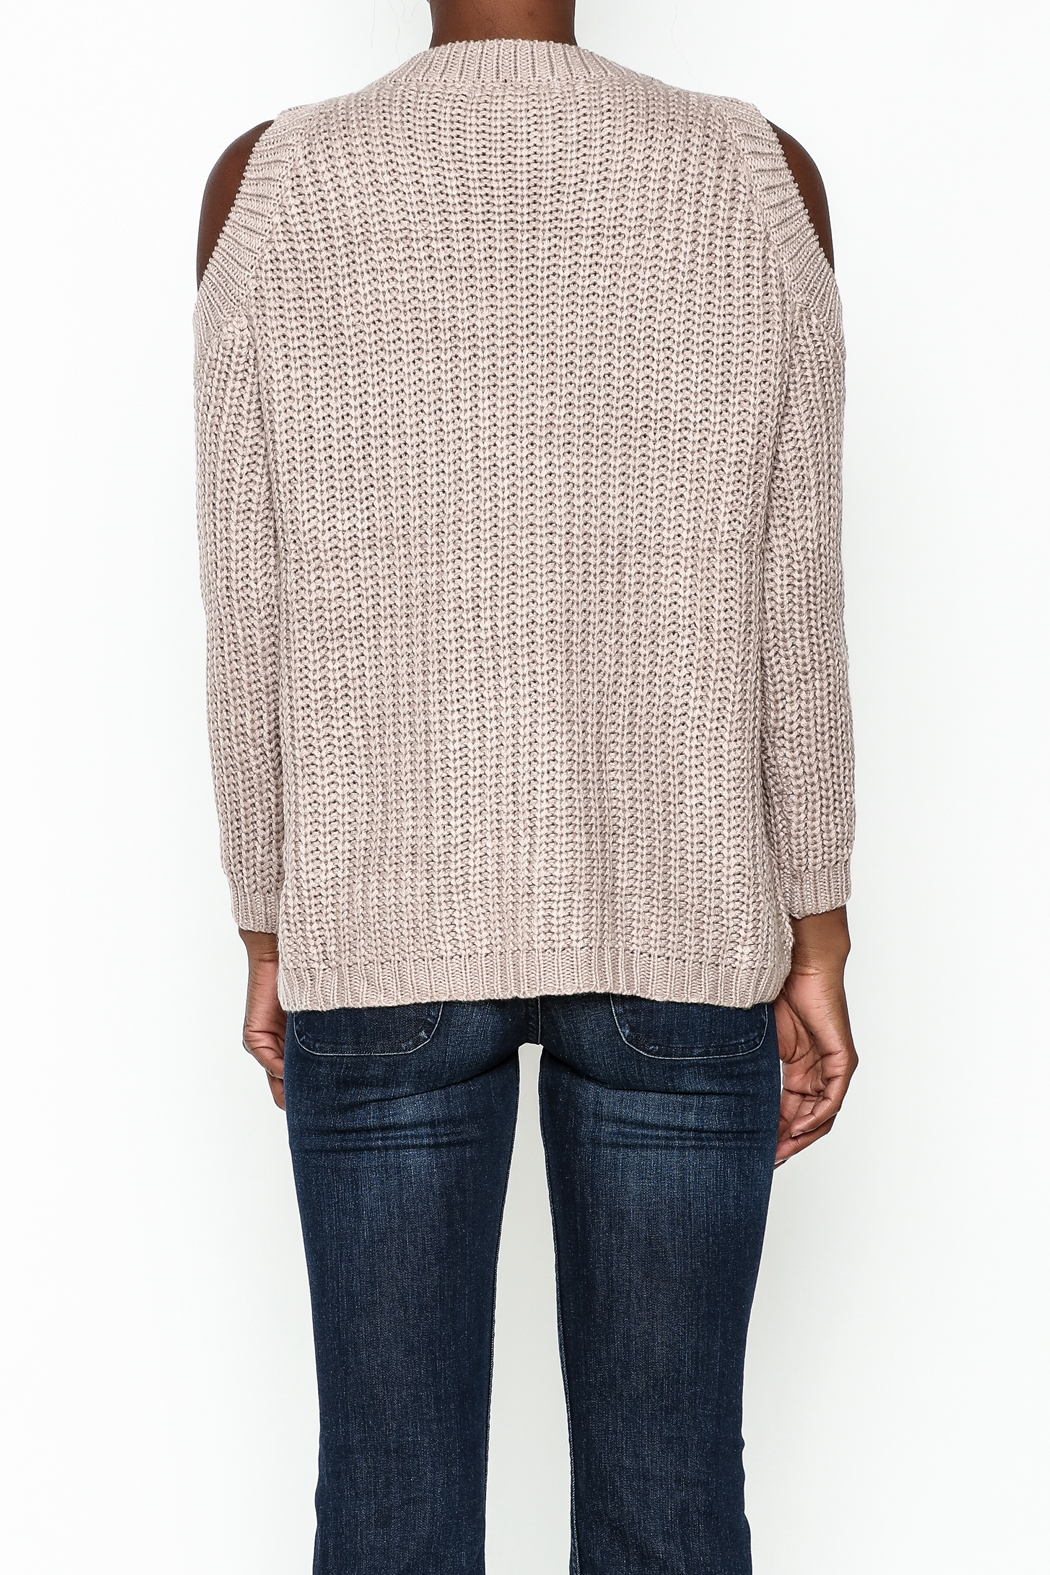 She + Sky Lace Up Sweater - Back Cropped Image